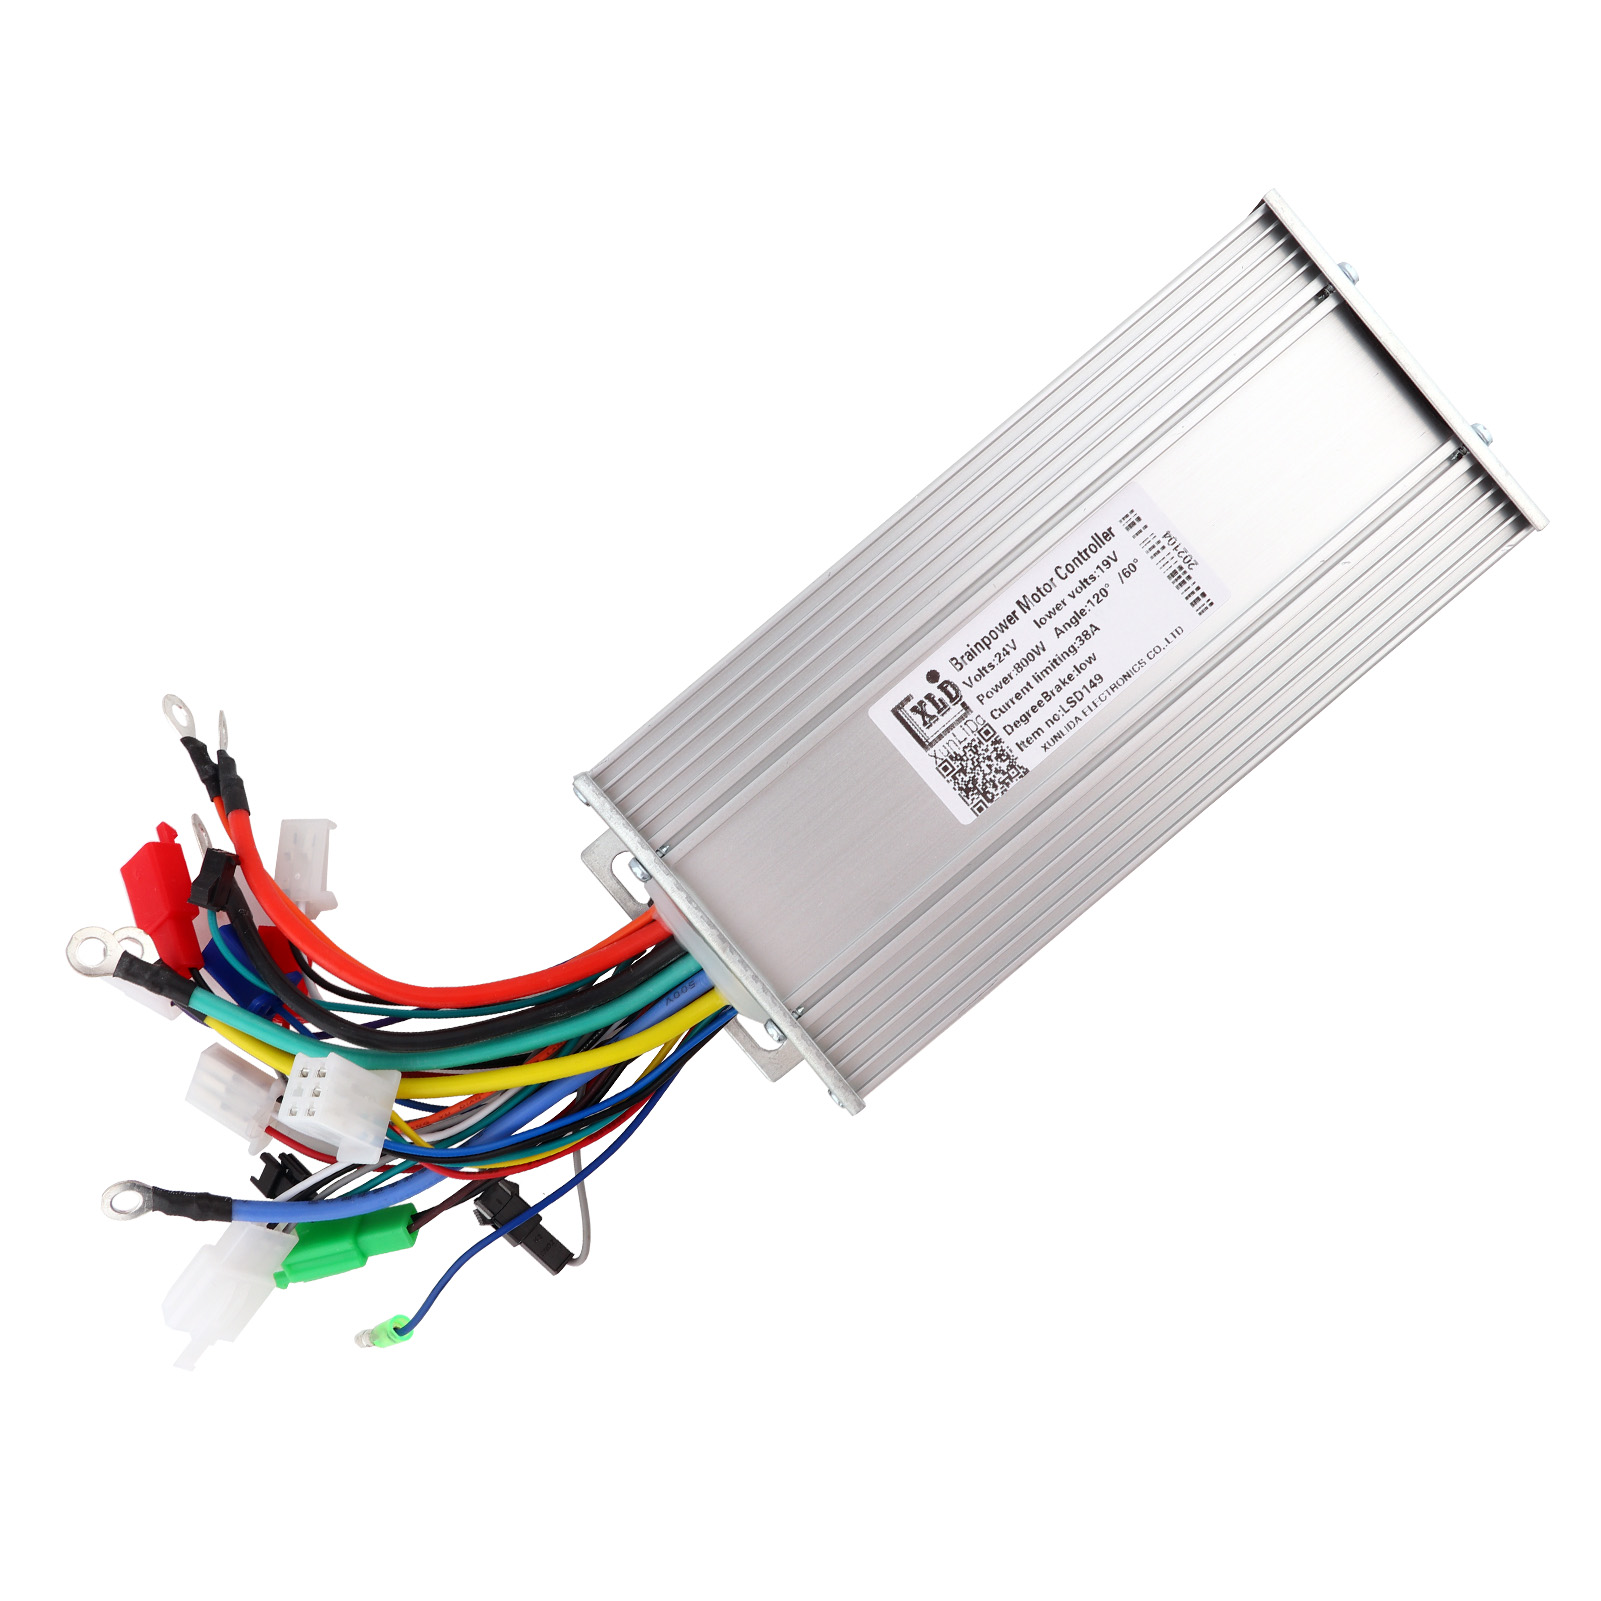 24-36-48V-800W-Brushless-Motor-Speed-Controller-Electric-Bicycle-E-bike-Scooter thumbnail 14